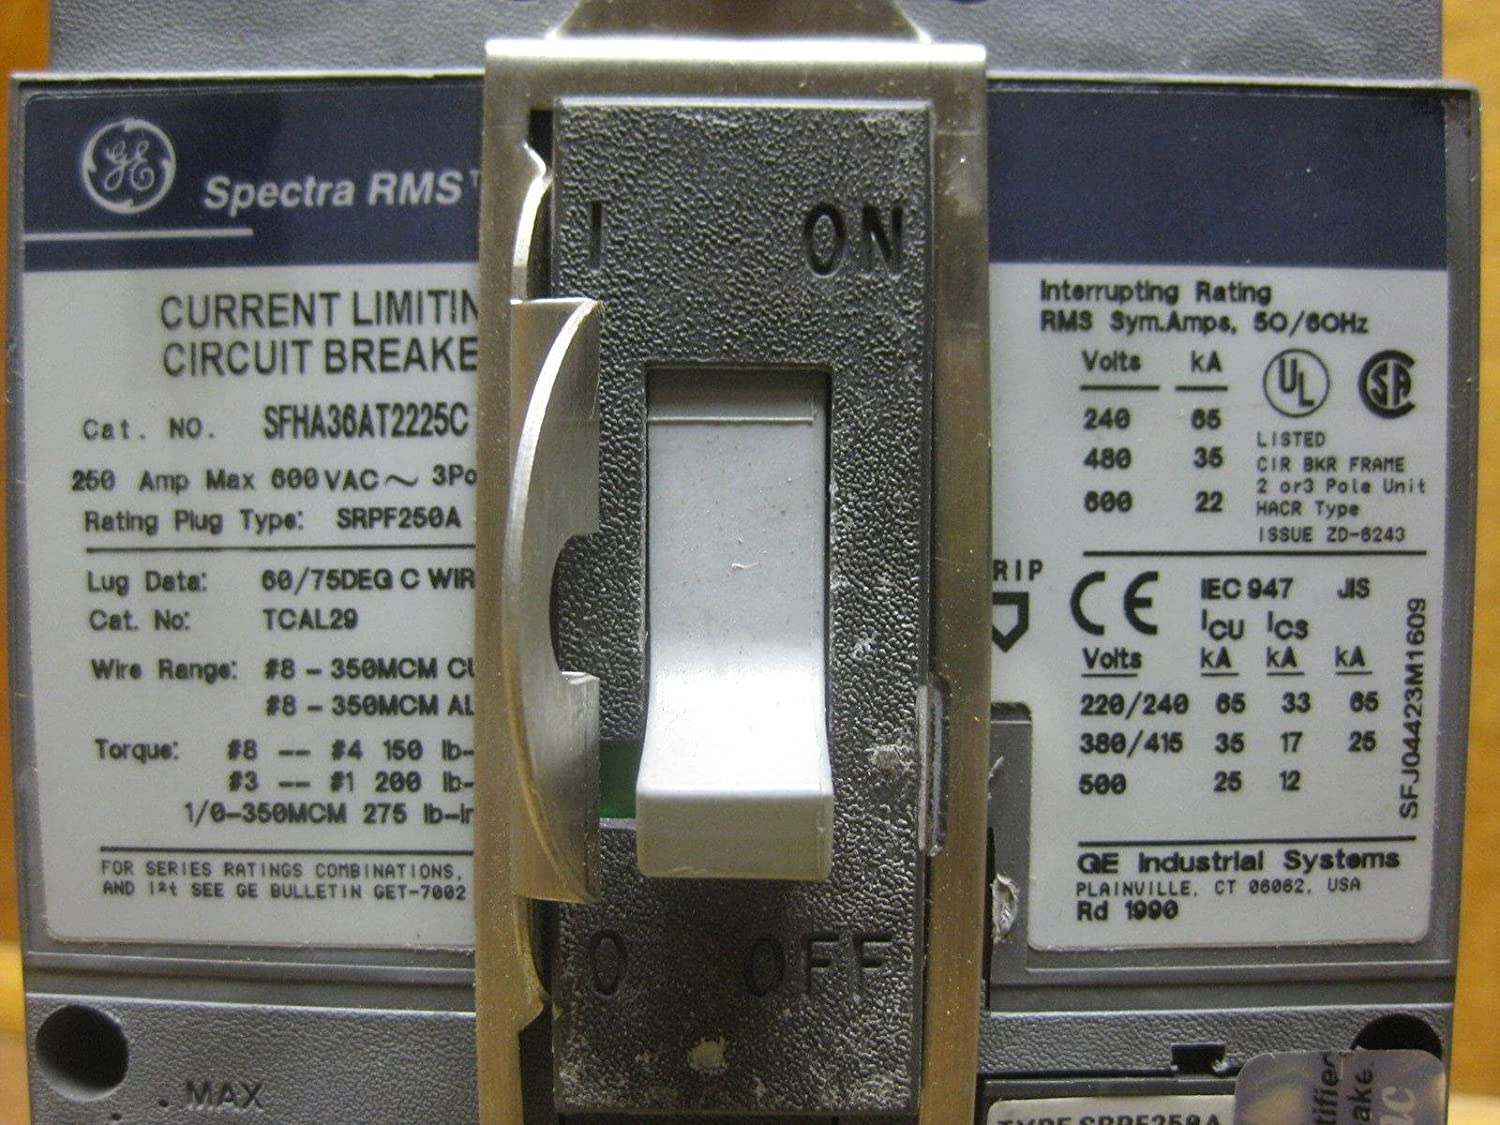 Ge General Electric Sfha36at2225c 250a Spectra Circuit Breaker W 4 Wire Schematic Diagram 480 Volt 225 Amp Plug Industrial Scientific